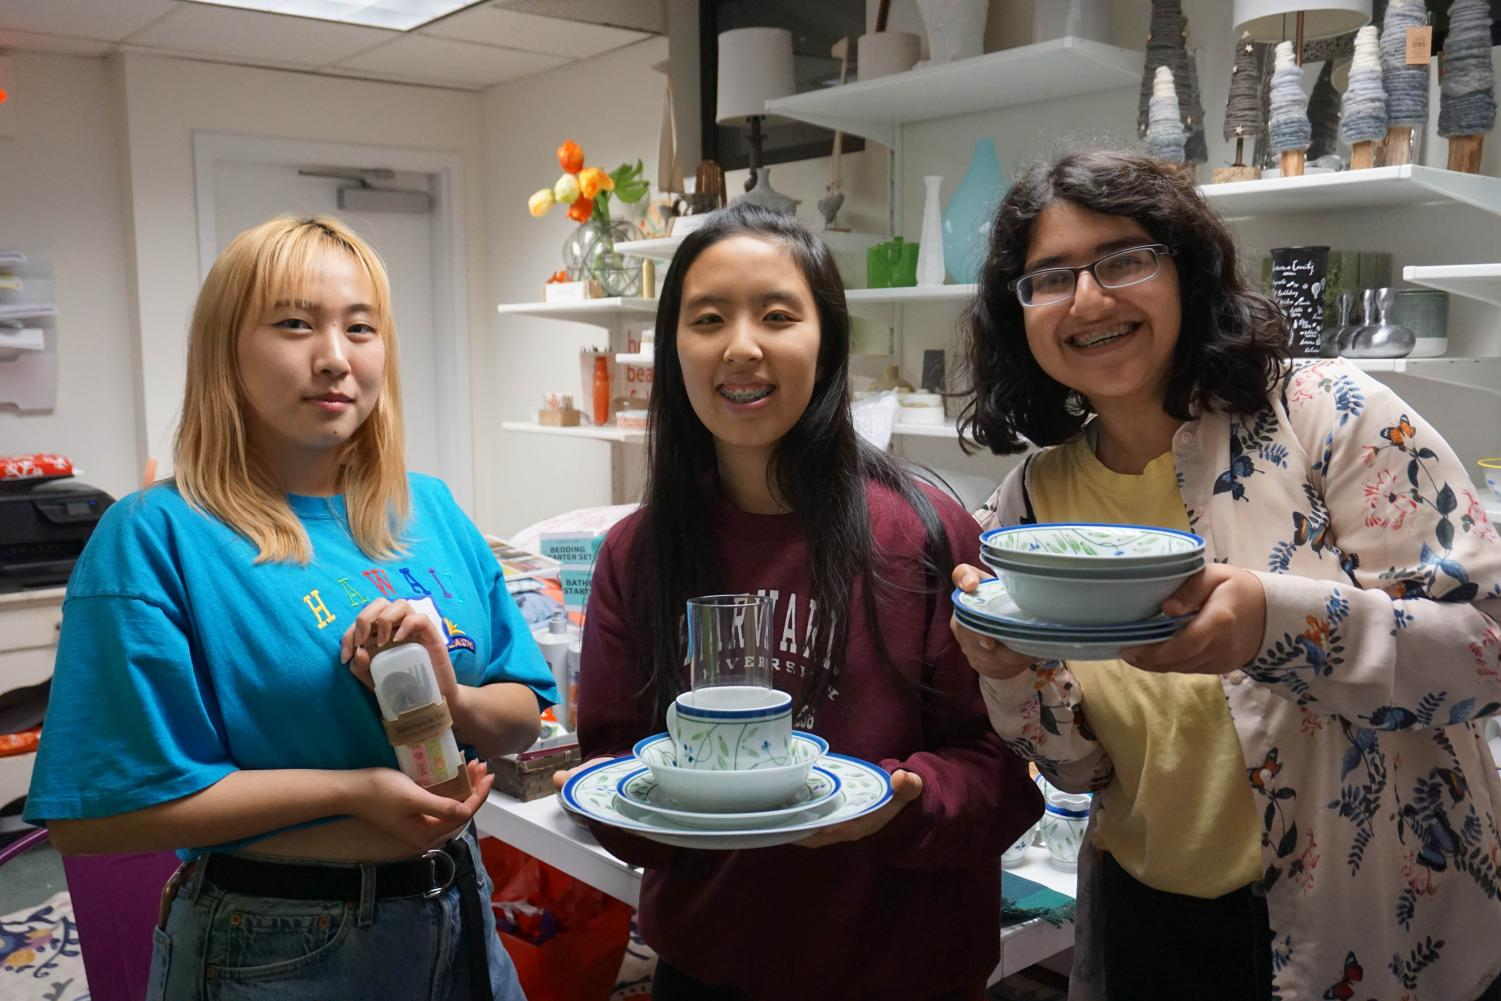 CRLS students volunteer at Furnishing Hope, helping families overcome homelessness.